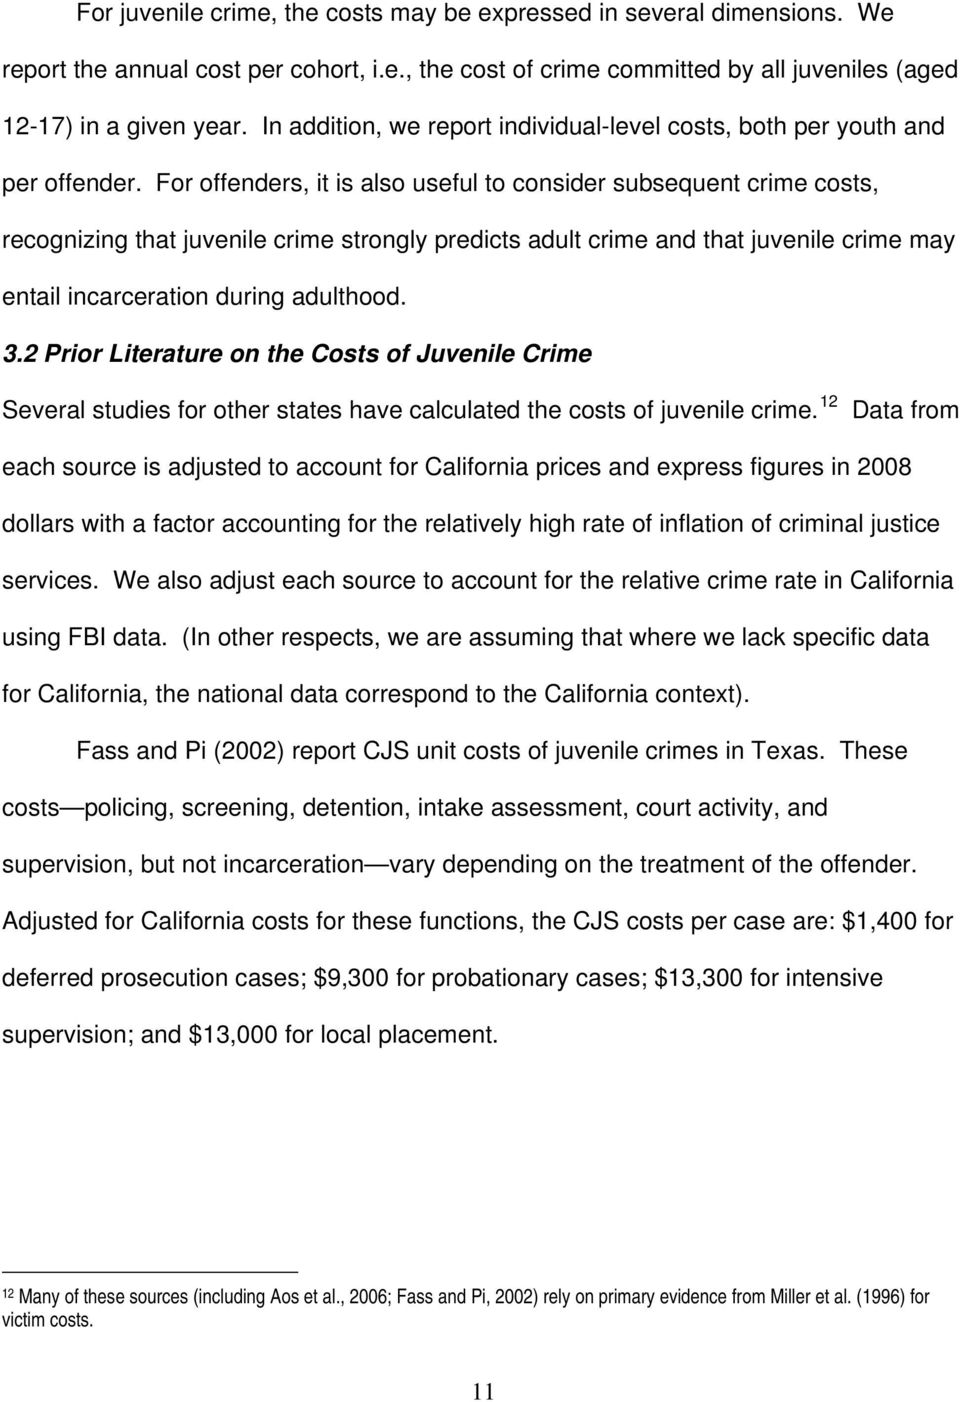 For offenders, it is also useful to consider subsequent crime costs, recognizing that juvenile crime strongly predicts adult crime and that juvenile crime may entail incarceration during adulthood. 3.